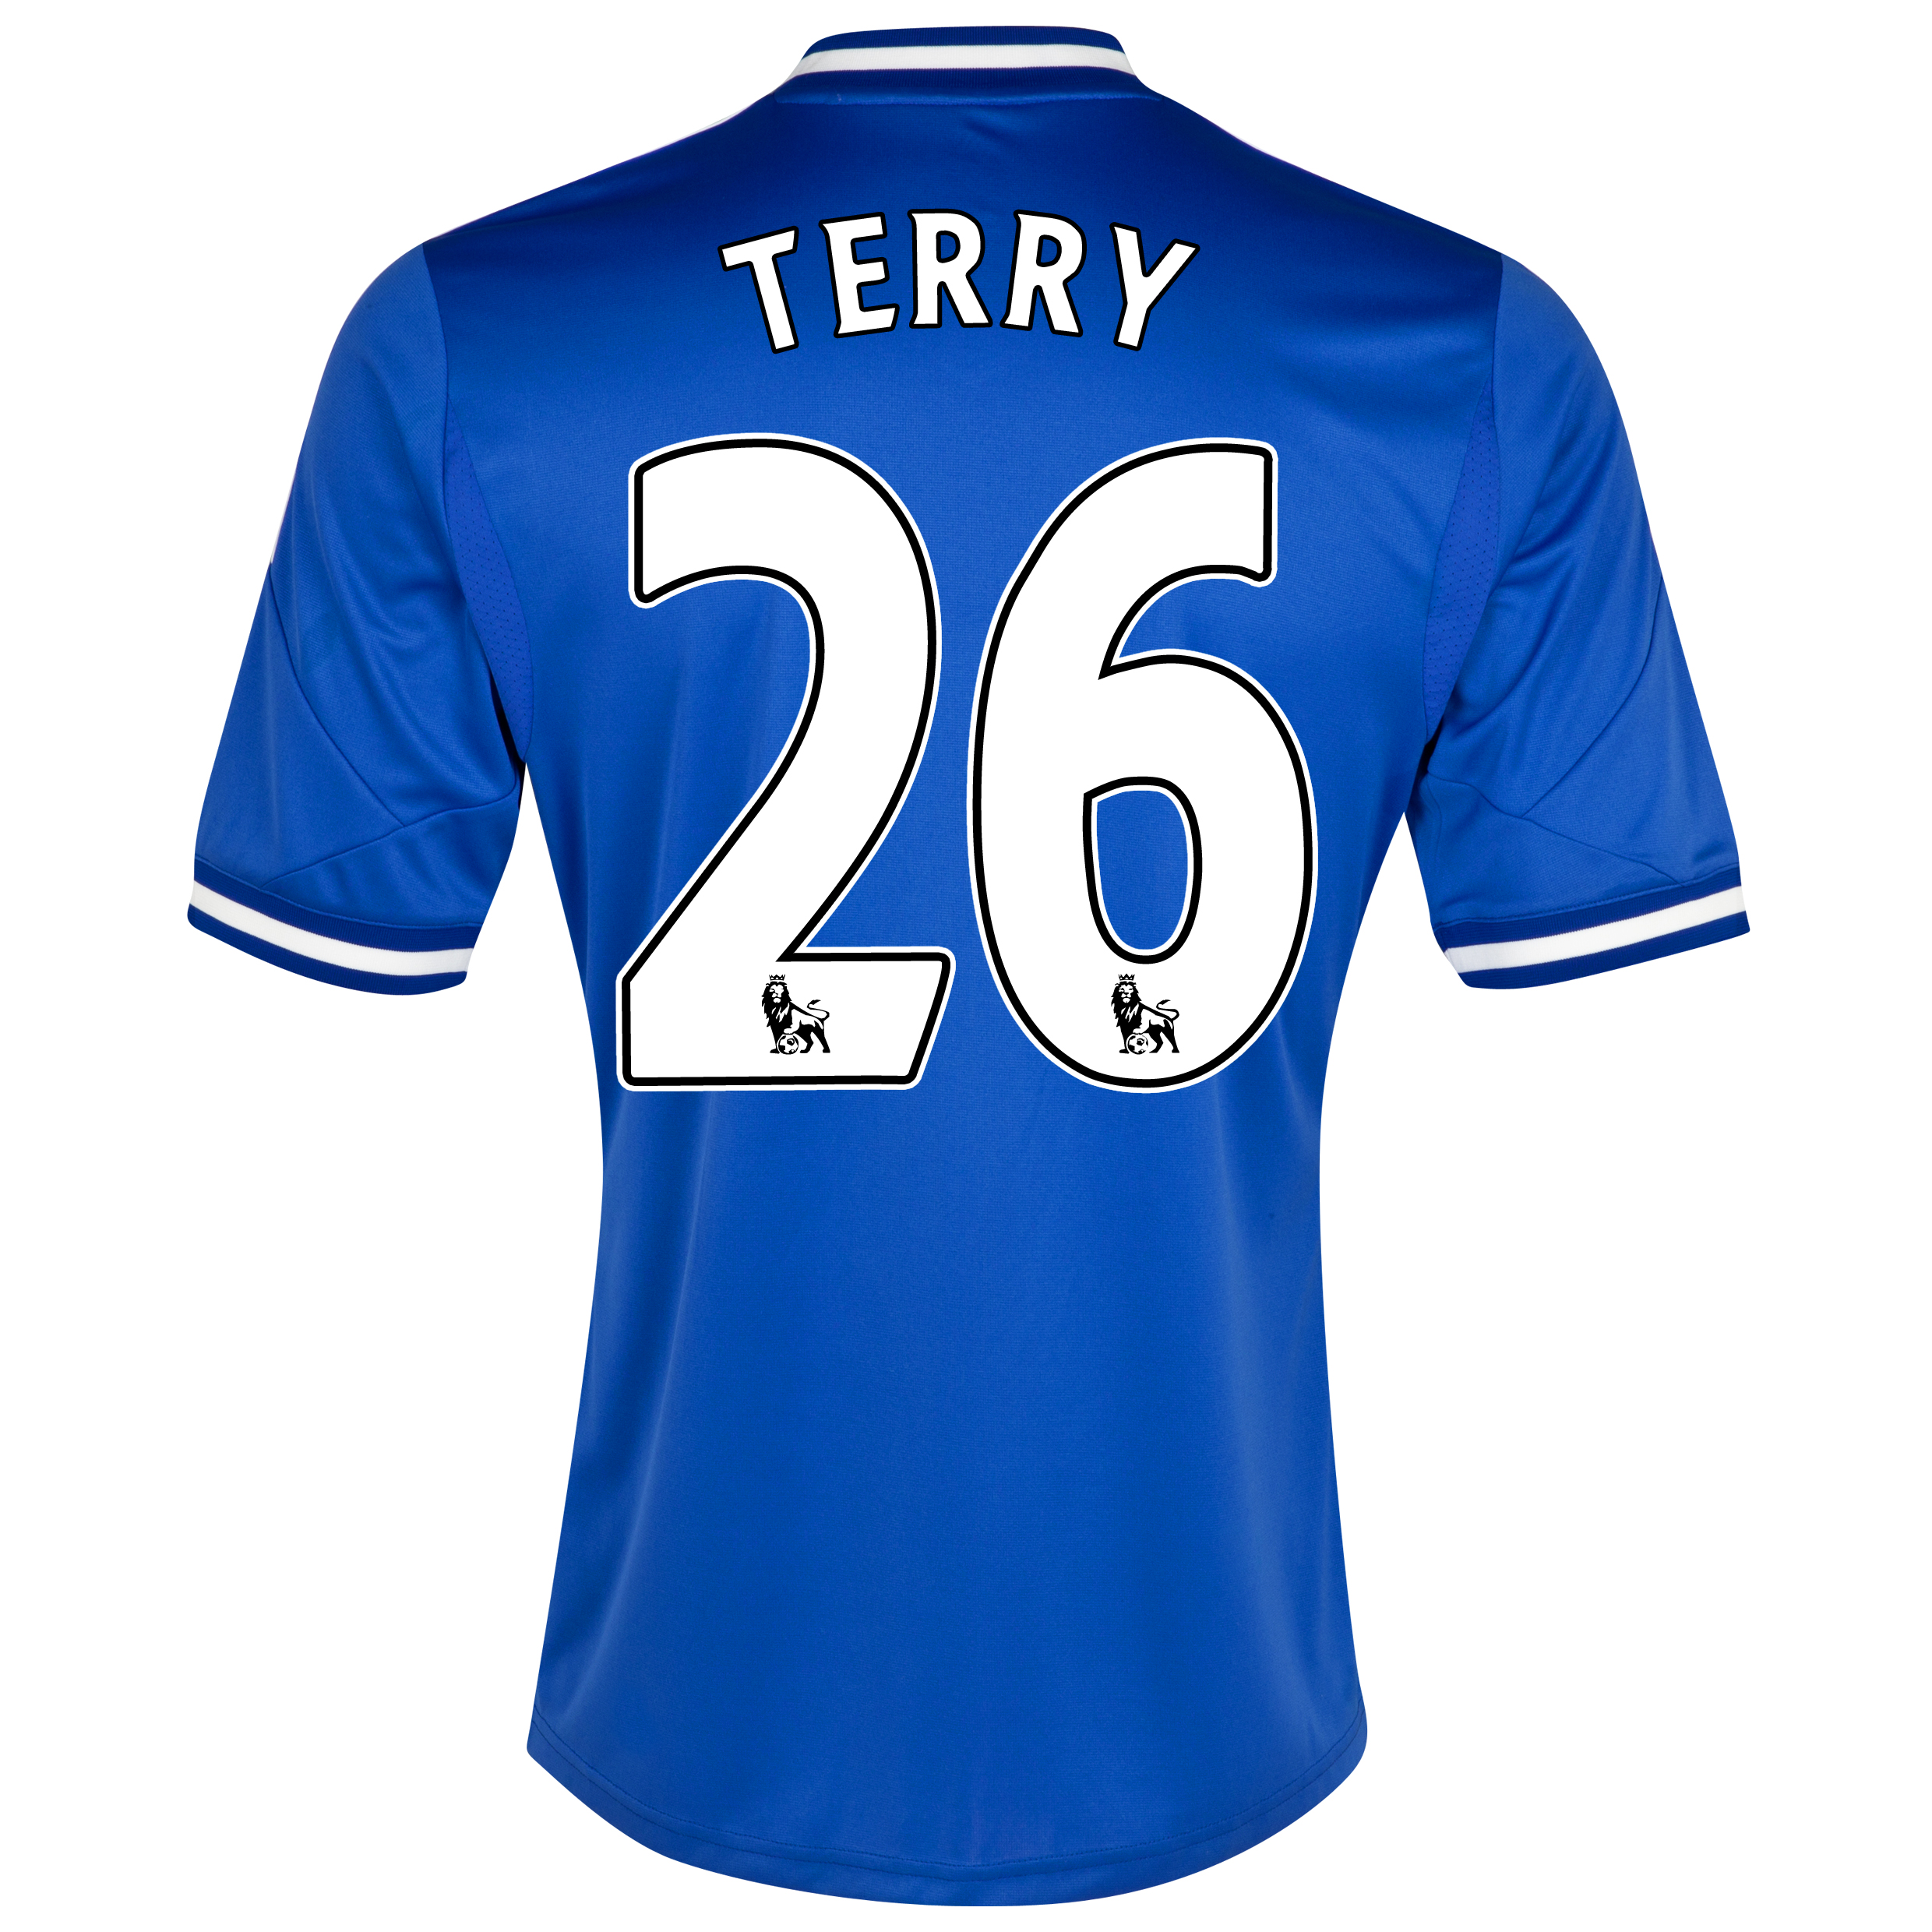 Chelsea Home Shirt 2013/14 with Terry 26 printing